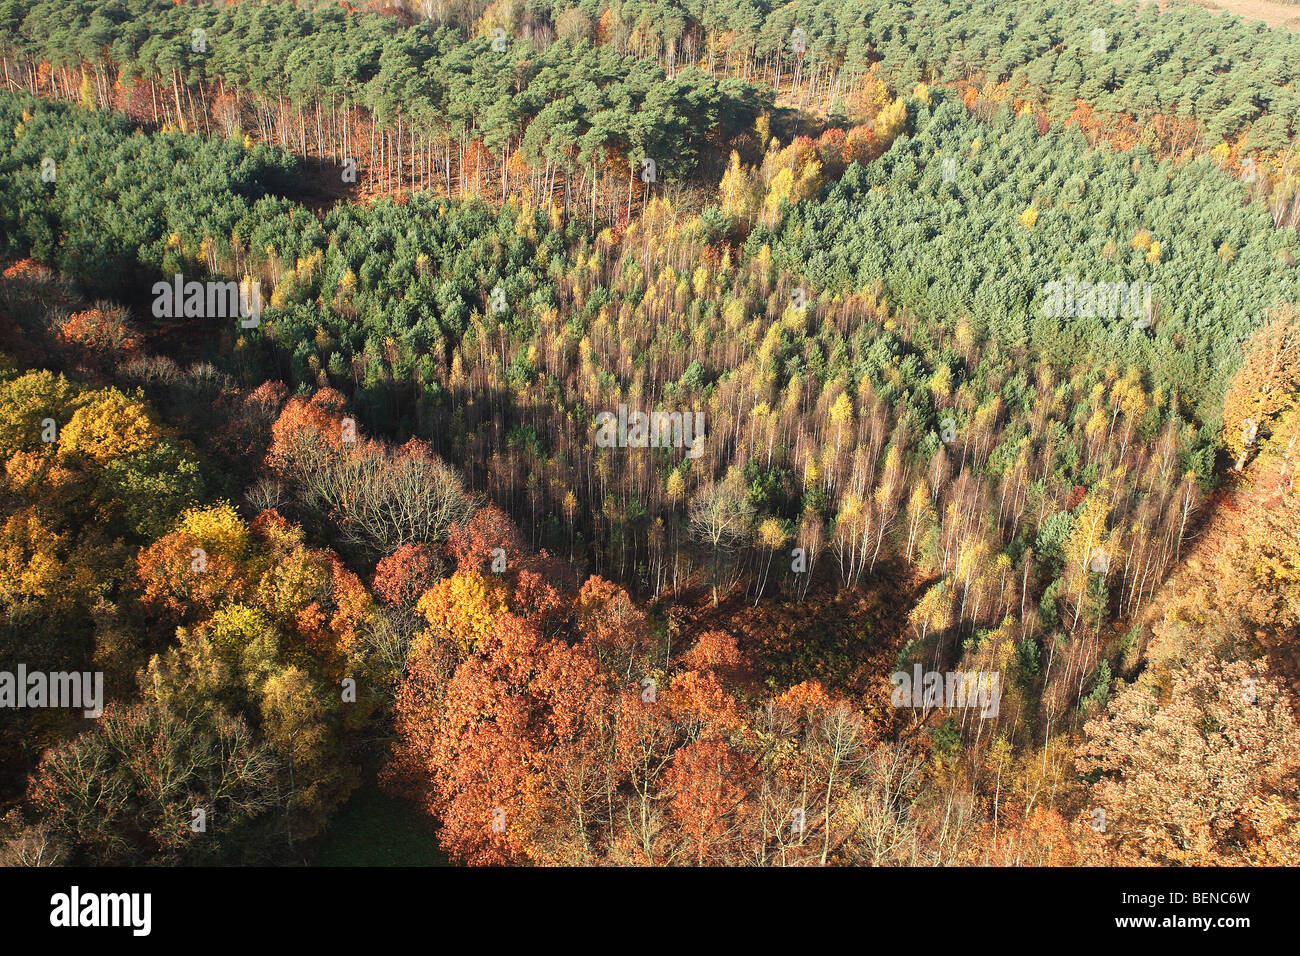 Mixed forest with Beech (Fagus sylvatica) and Oak (Quercus robur) in autumn from the air, Belgium - Stock Image